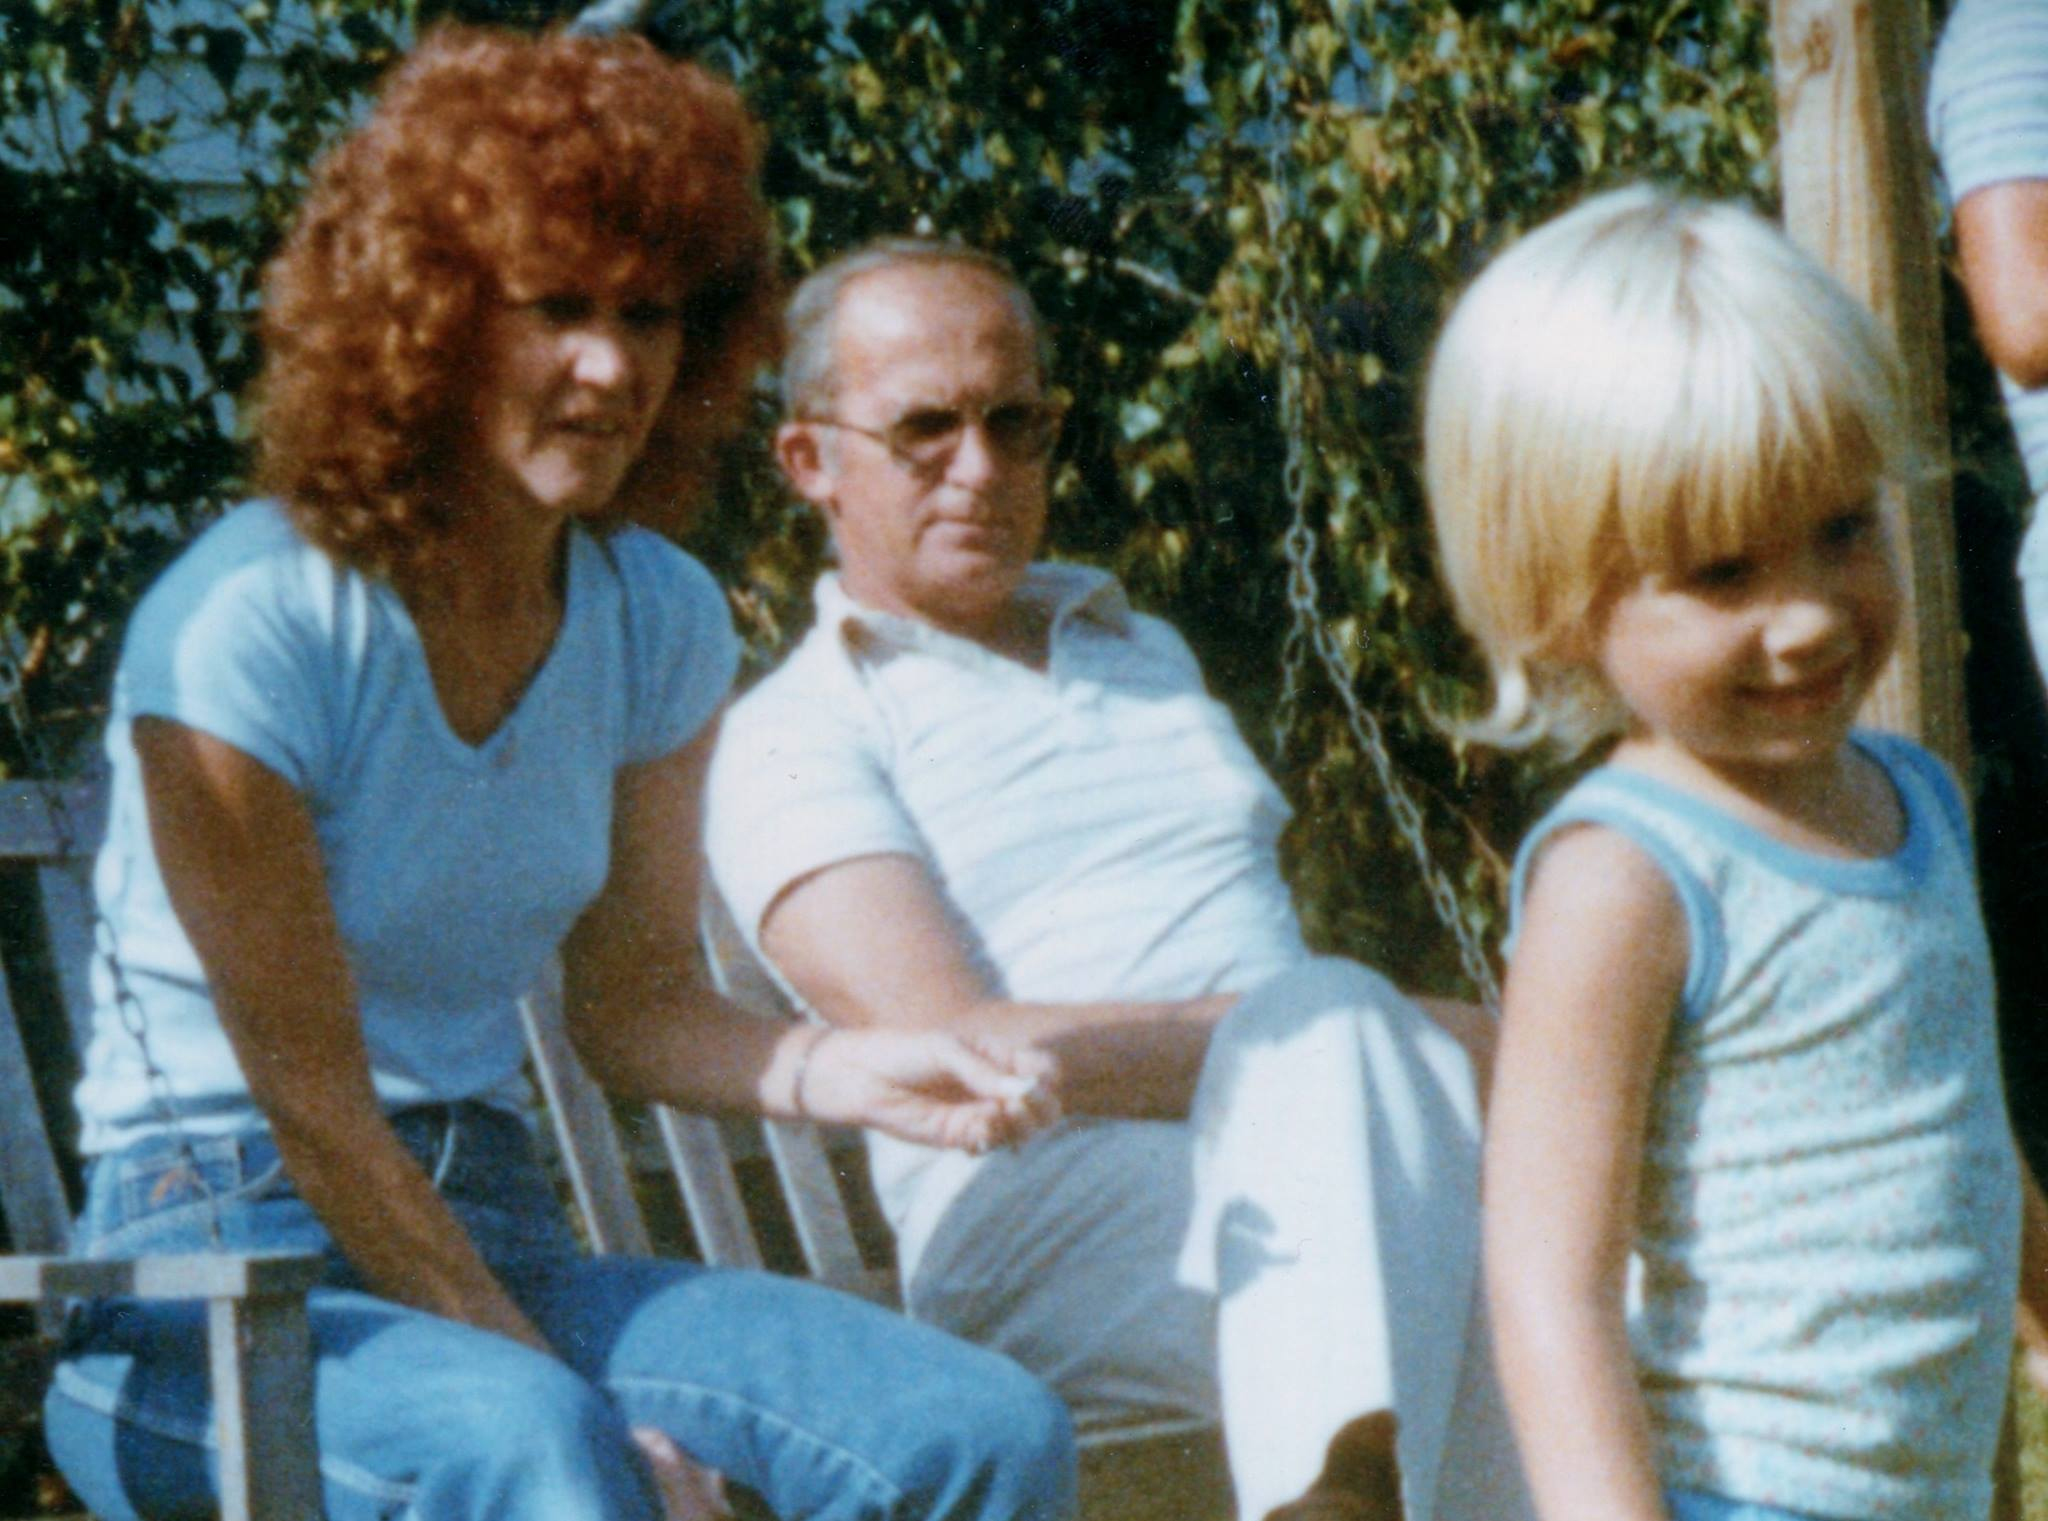 Mom Mom, Pop & Me - summertime in the 80's